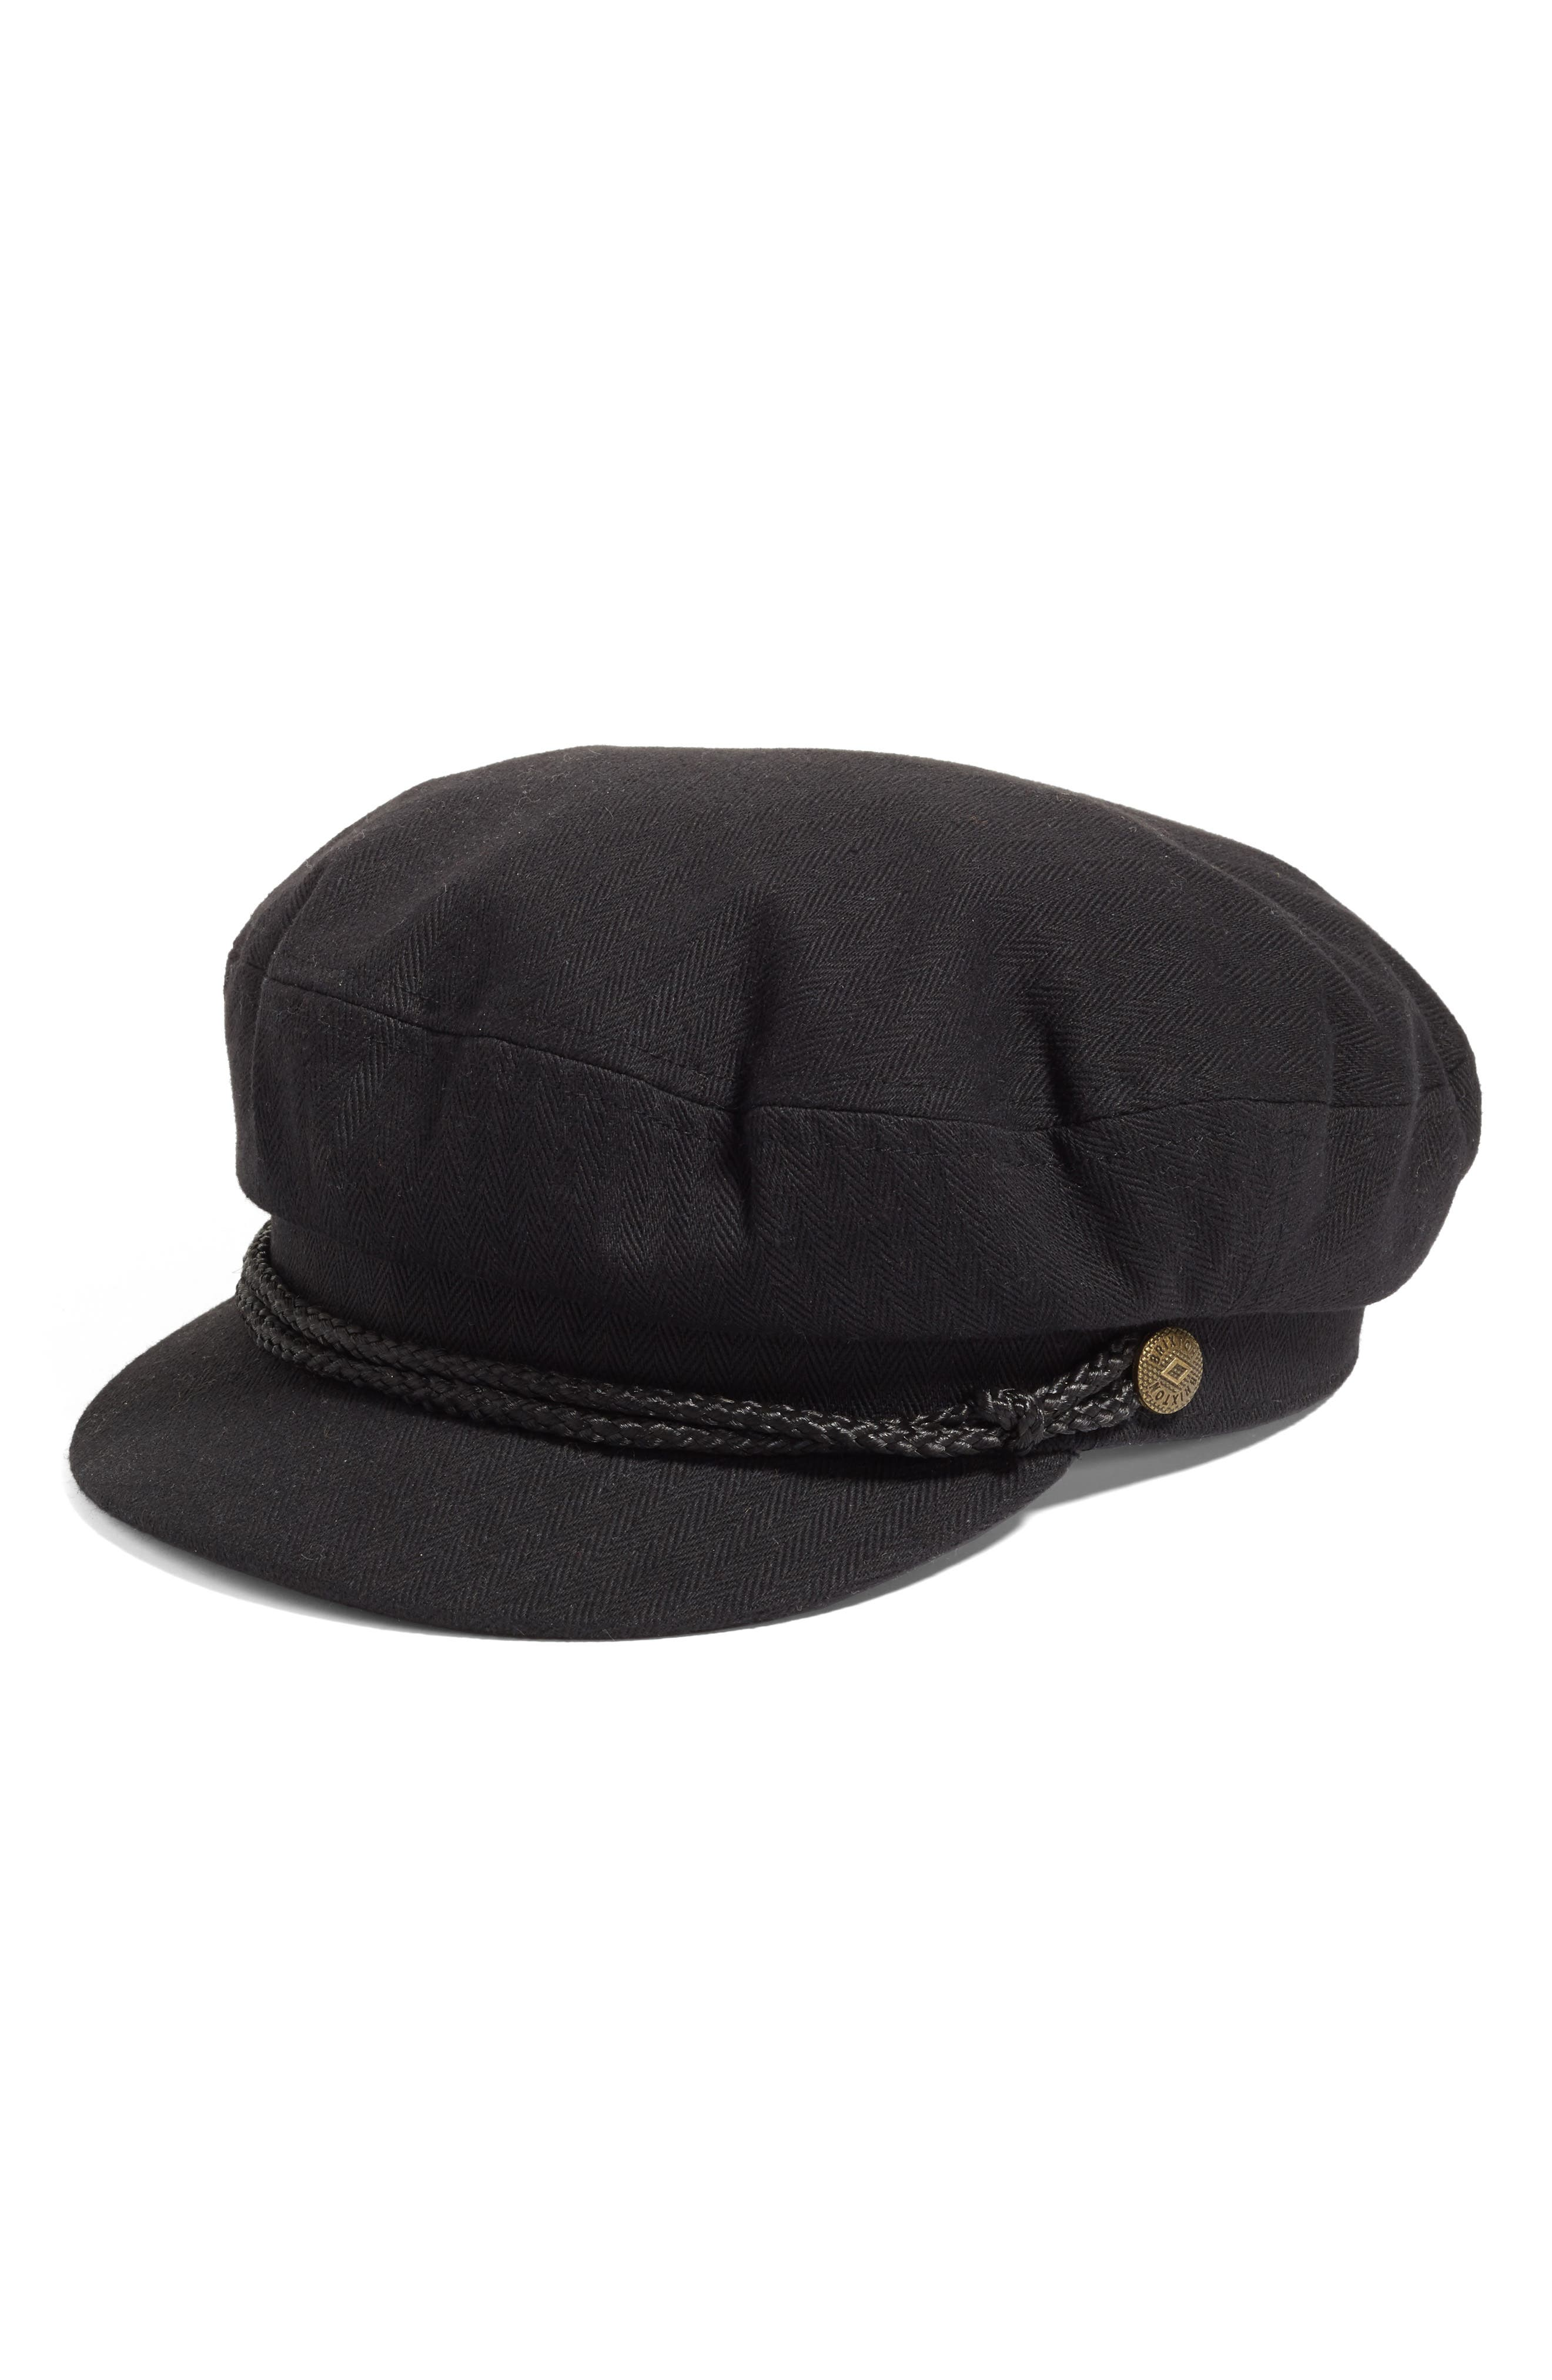 Main Image - Brixton Fiddler Fisherman Cap